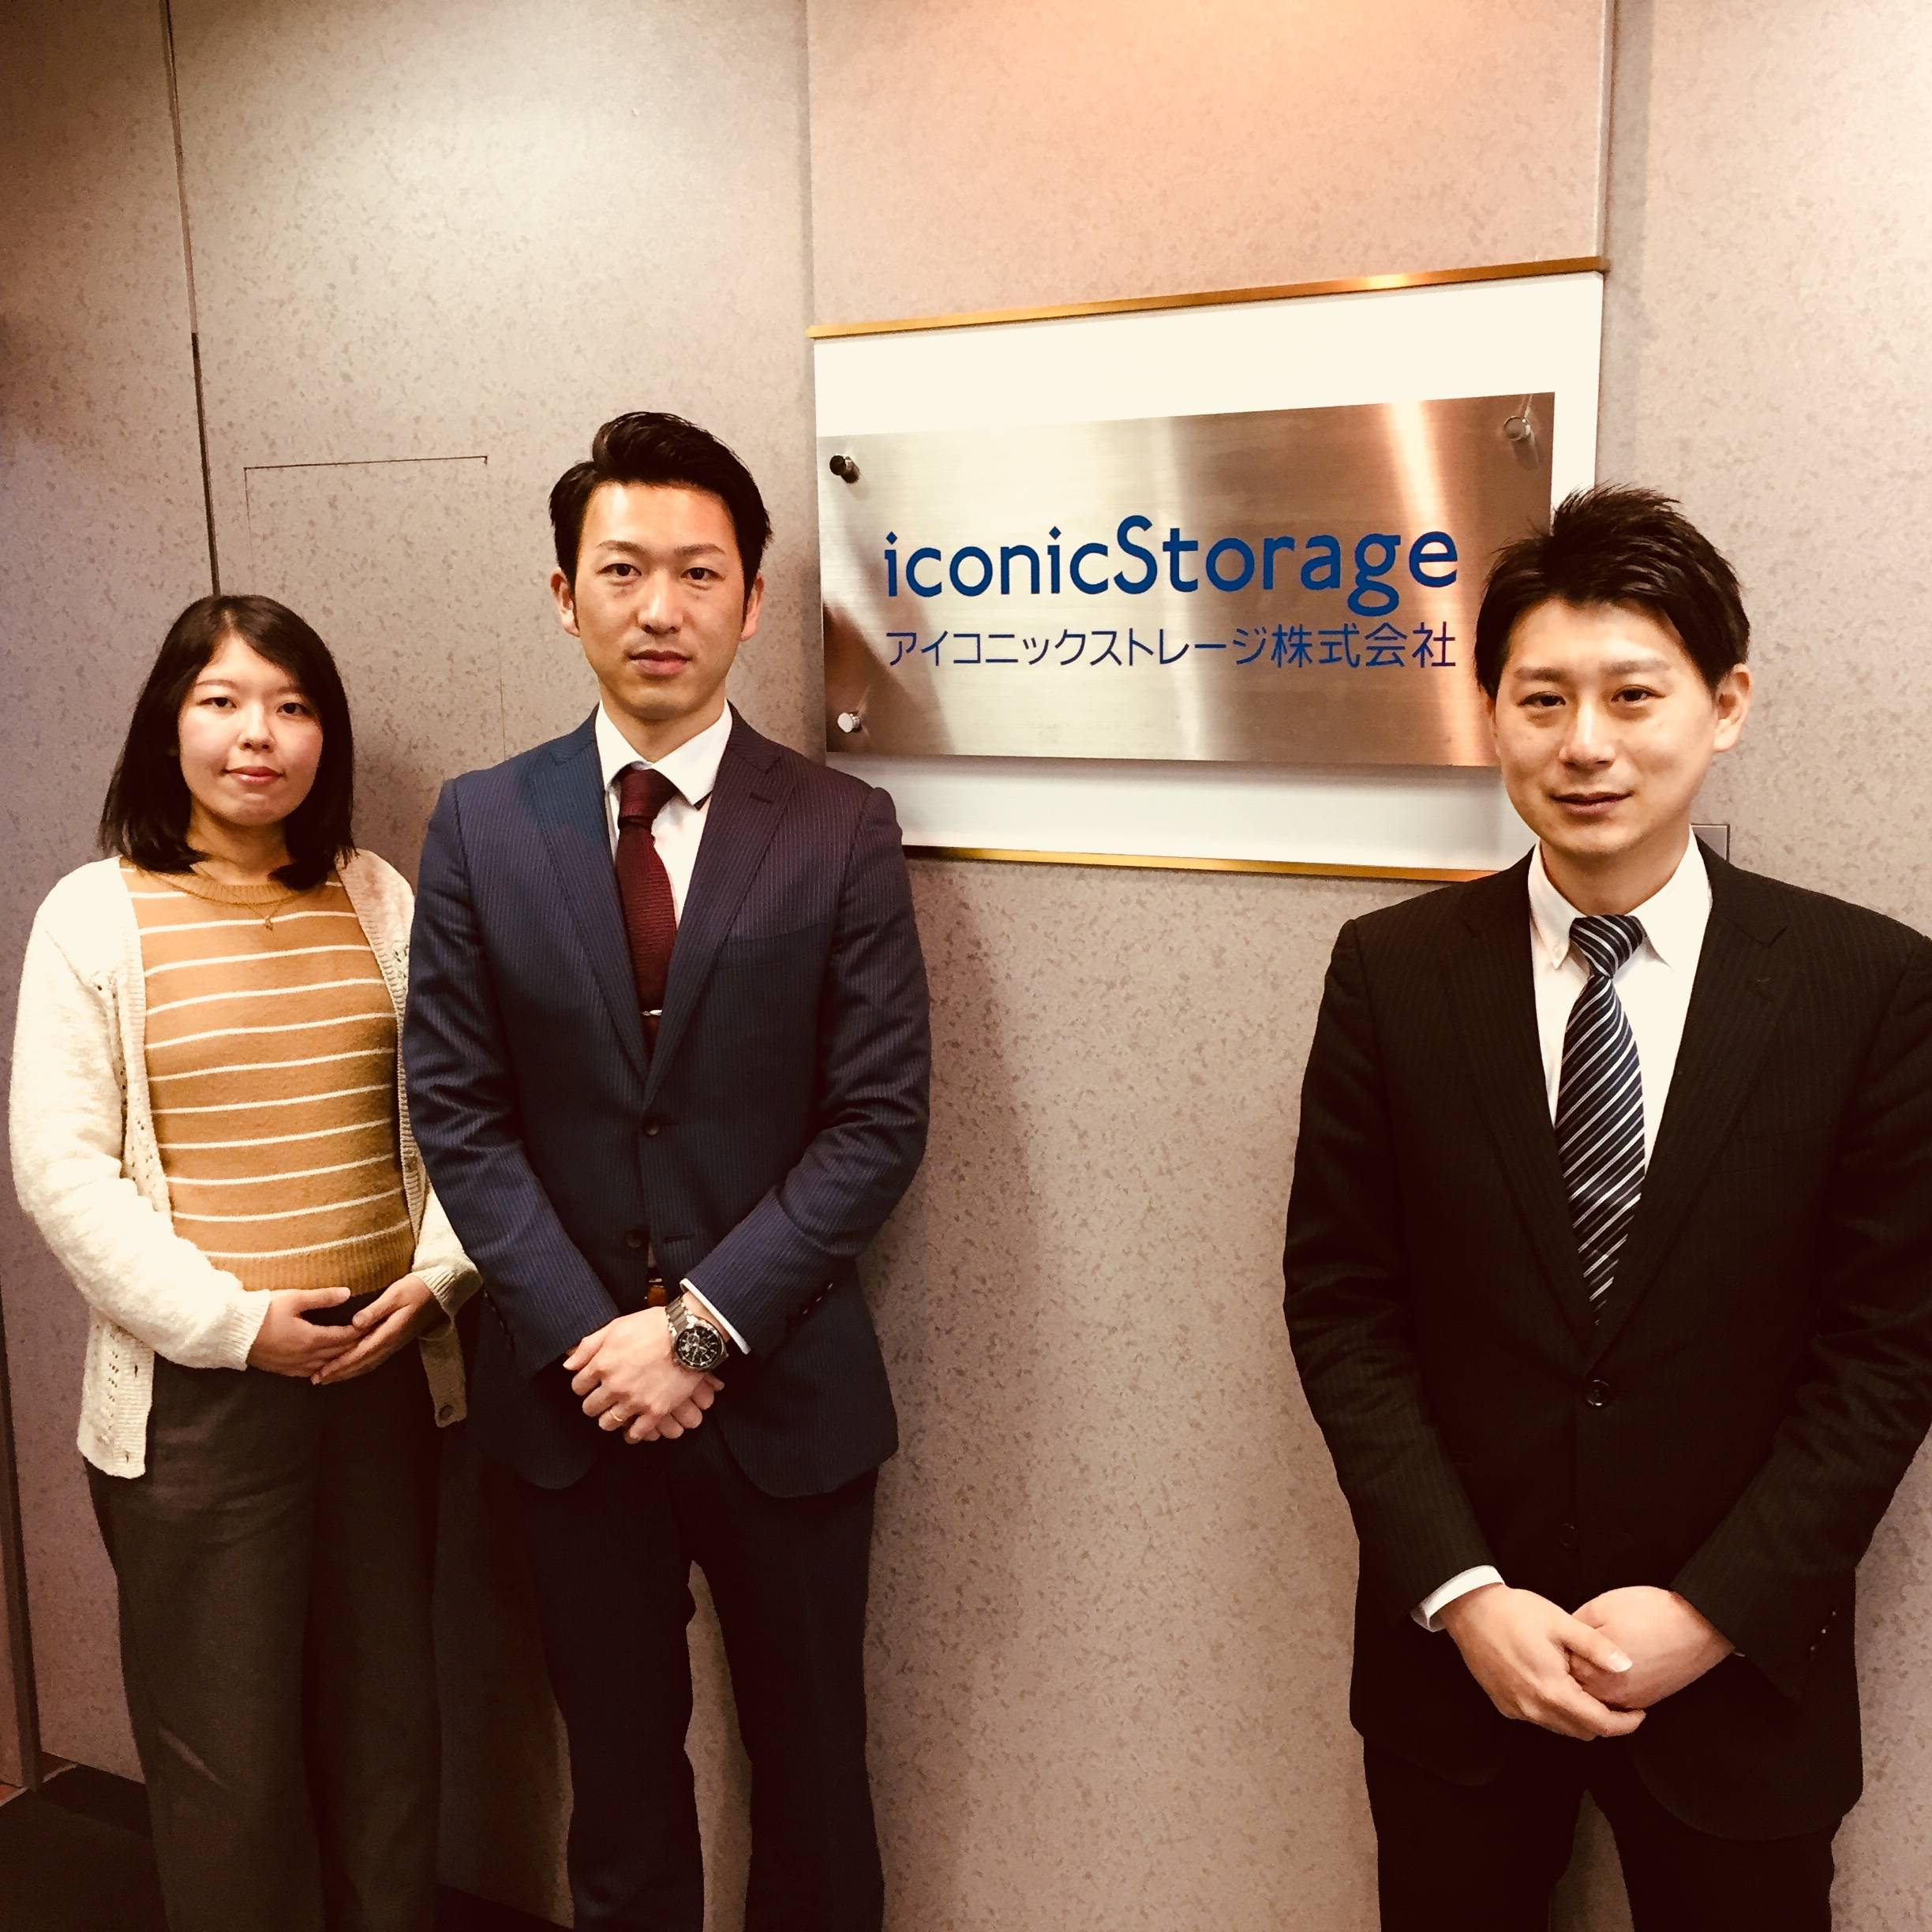 iconicstorage株式会社